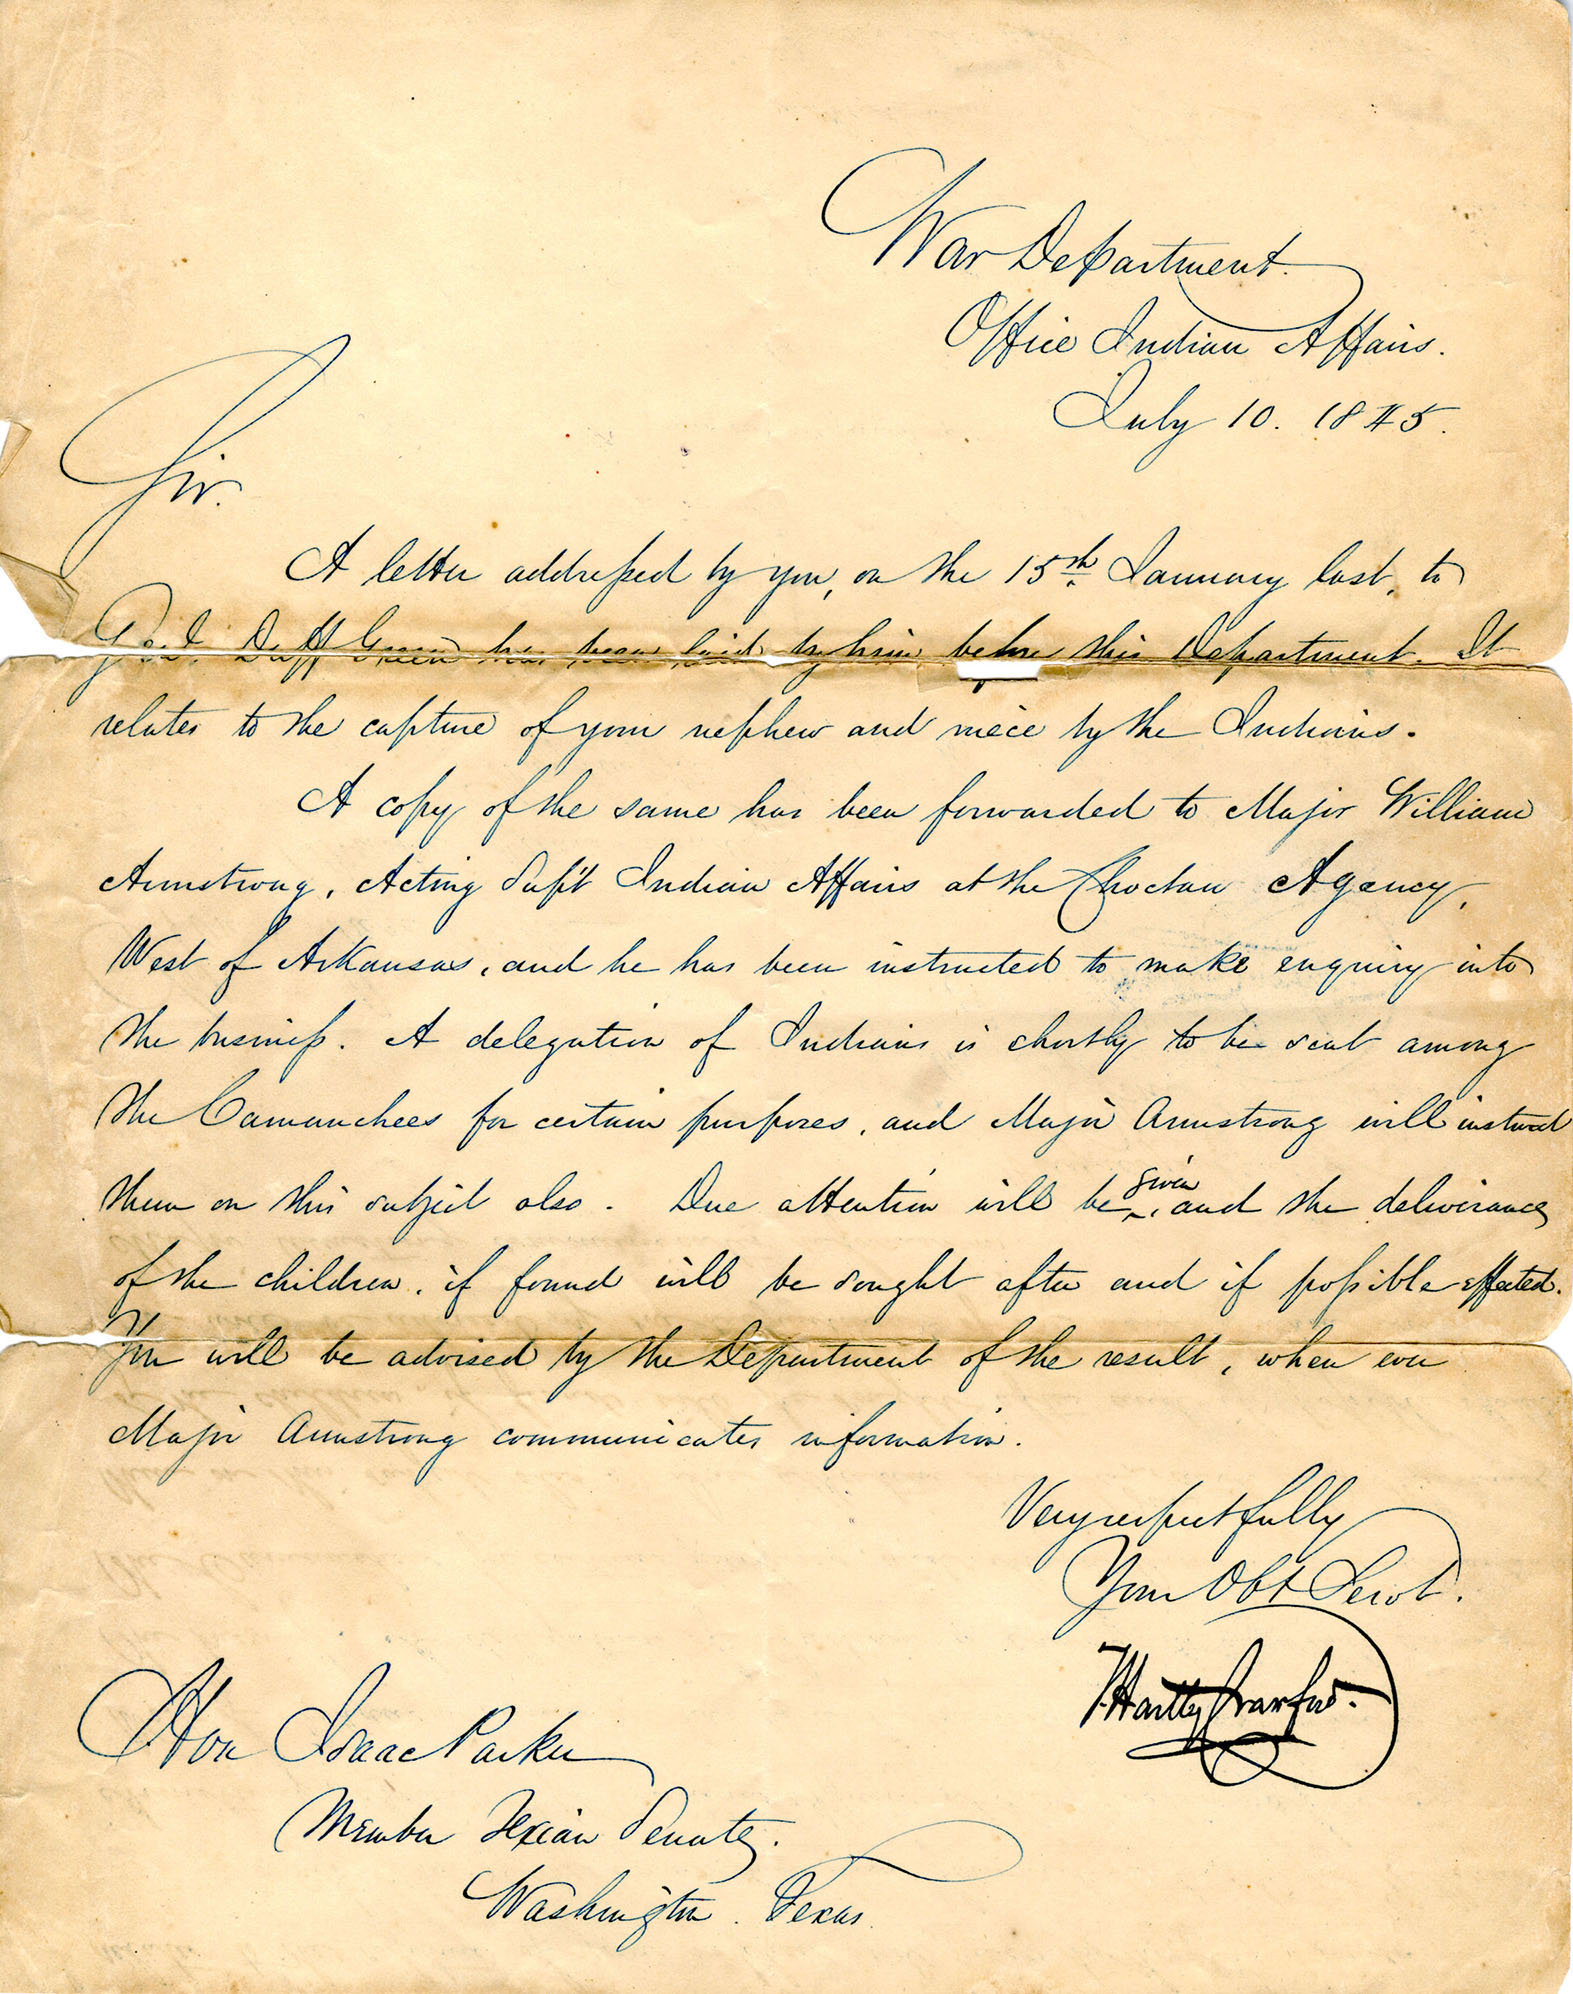 U.S. War Department Letter to Isaac Parker, 1845 (Cynthia Ann Parker)